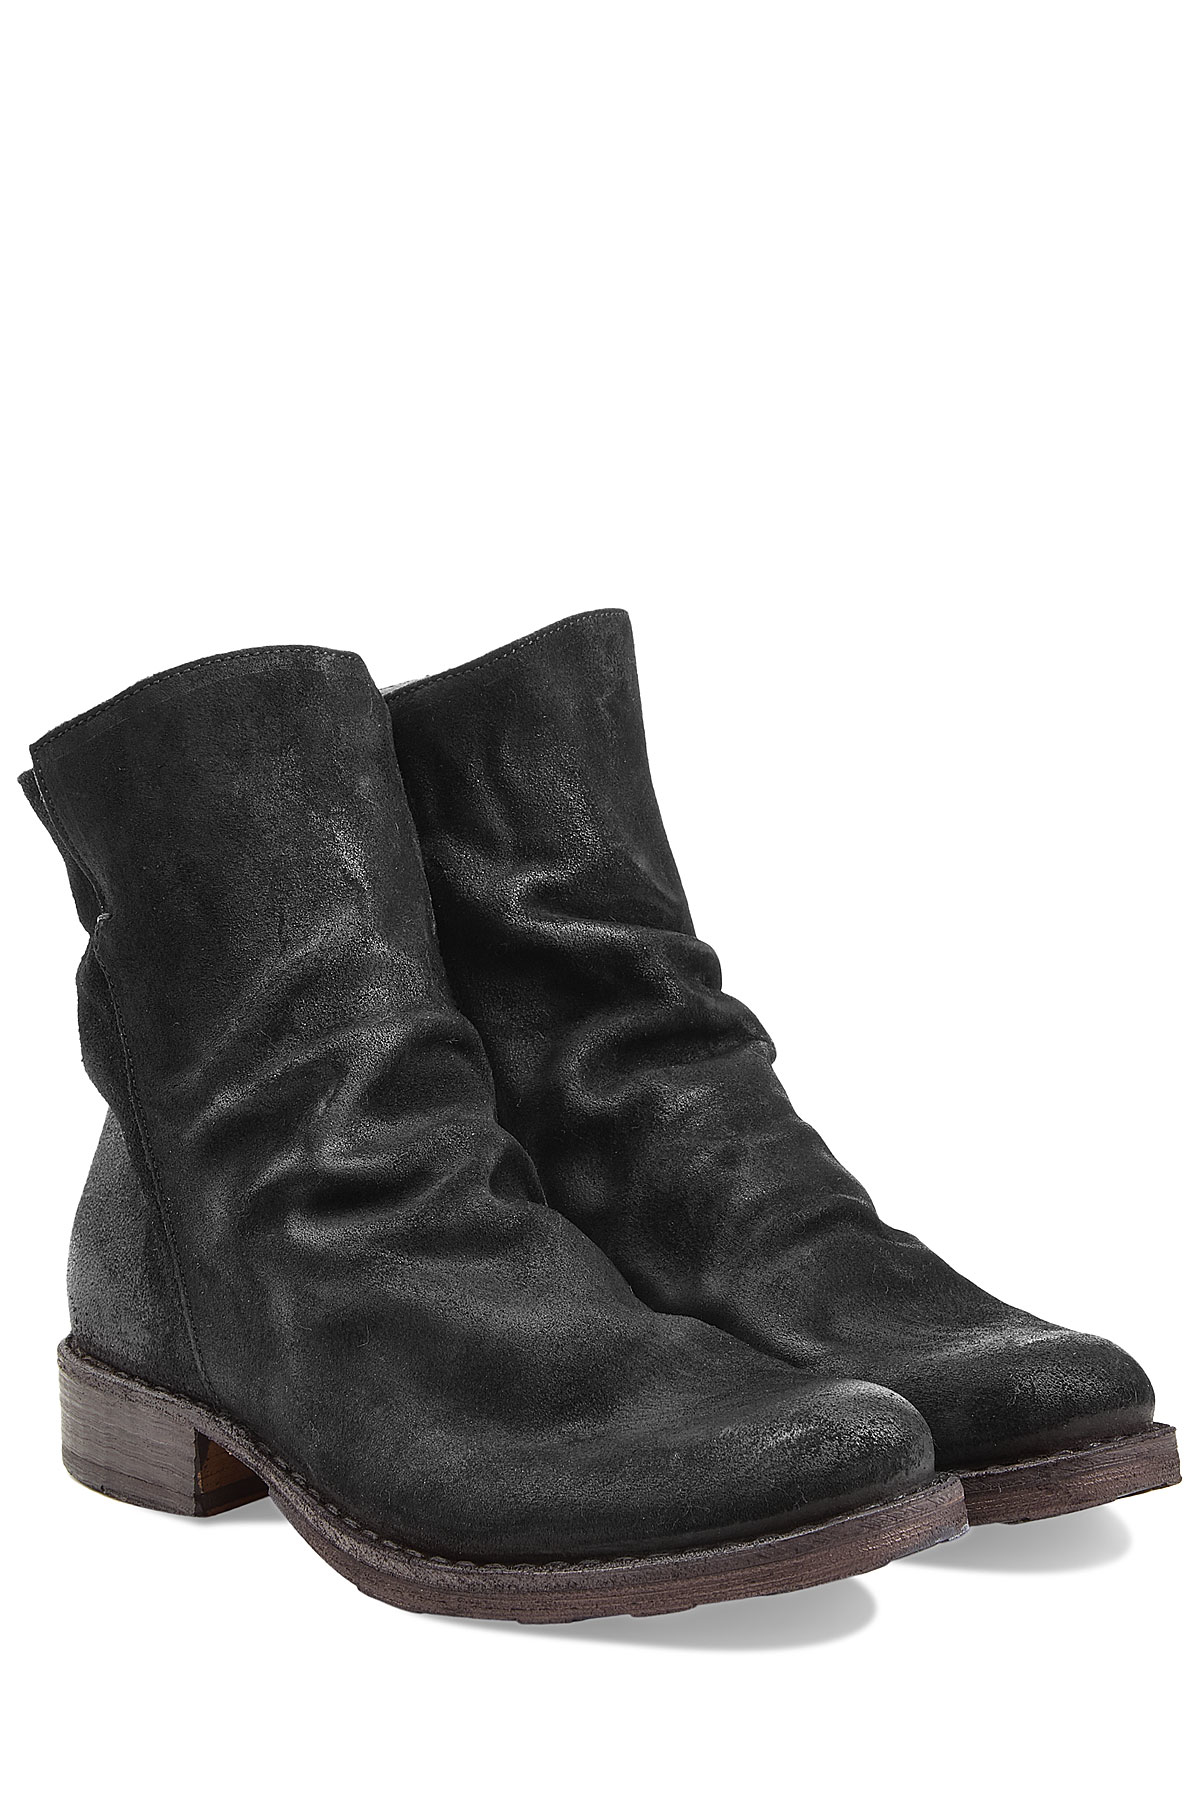 Fiorentini + Baker Distressed Ankle Boots free shipping latest j8NWda